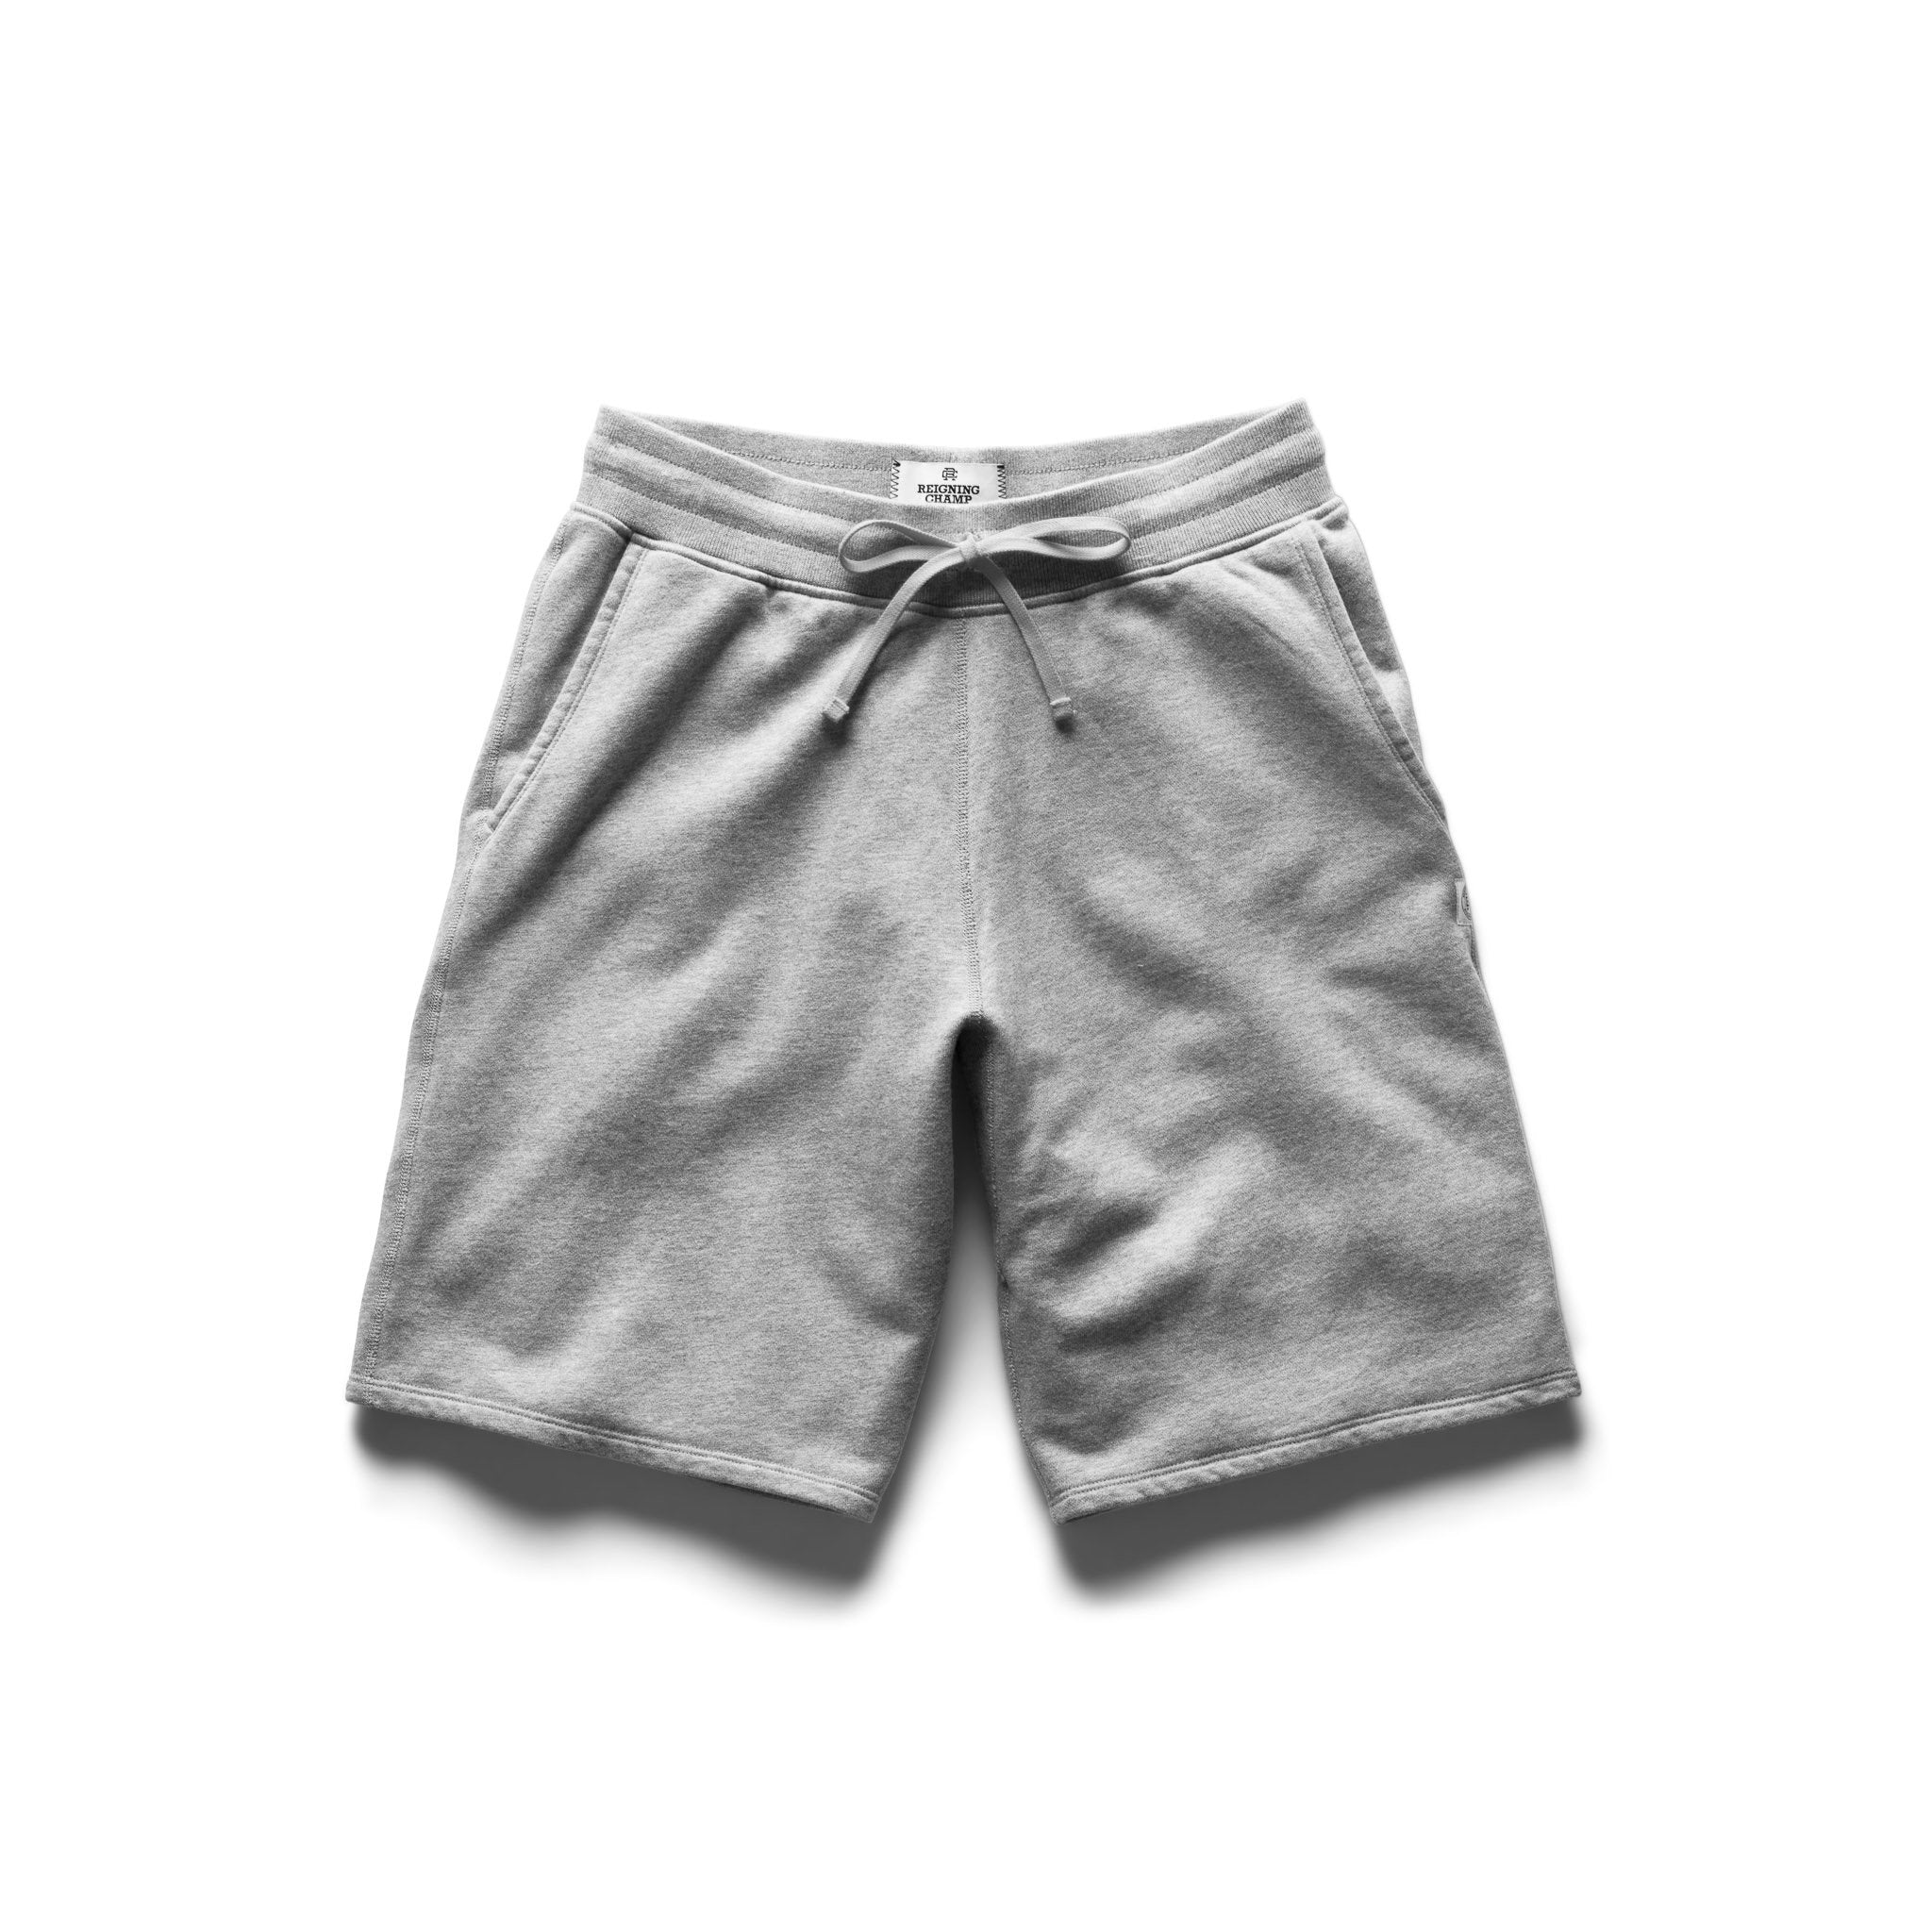 REIGNING CHAMP M'S SHORTS H.GRY S LIGHTWEIGHT SWEATSHORT